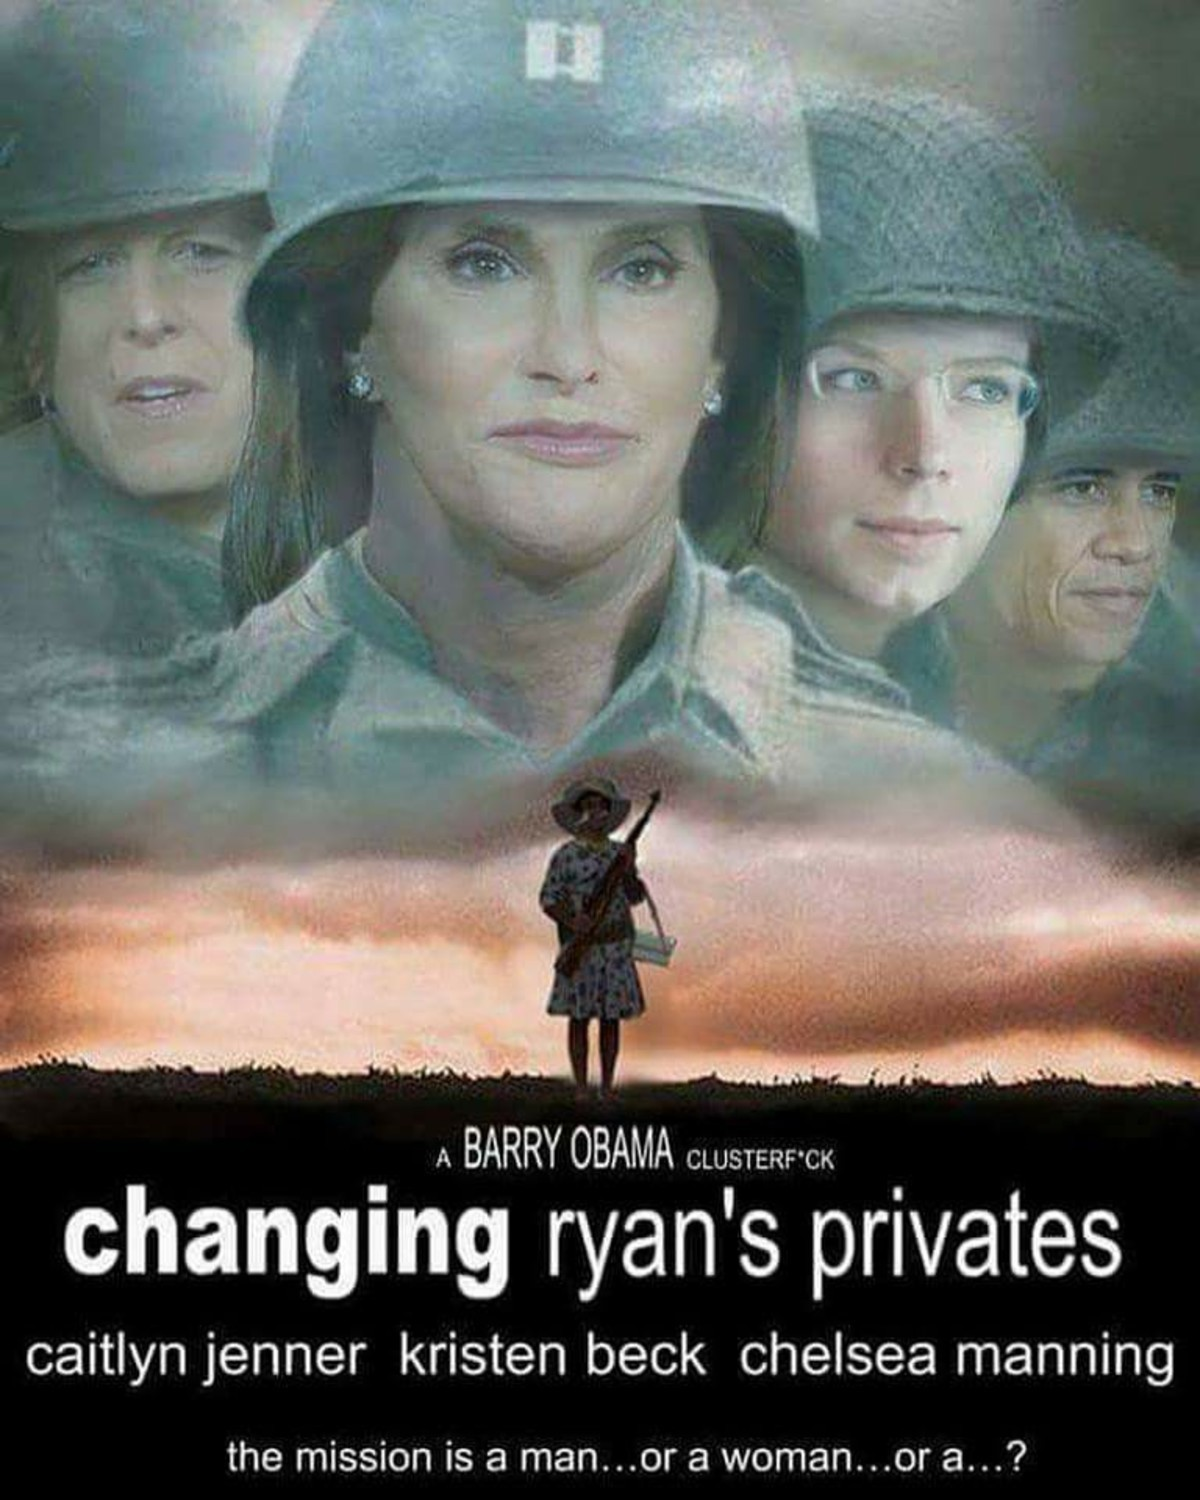 Transgendered Military Rescue Escapade. Stolen from Facebook. changing ryan' s privates caitlyn jenner kristen beck chelsea manning